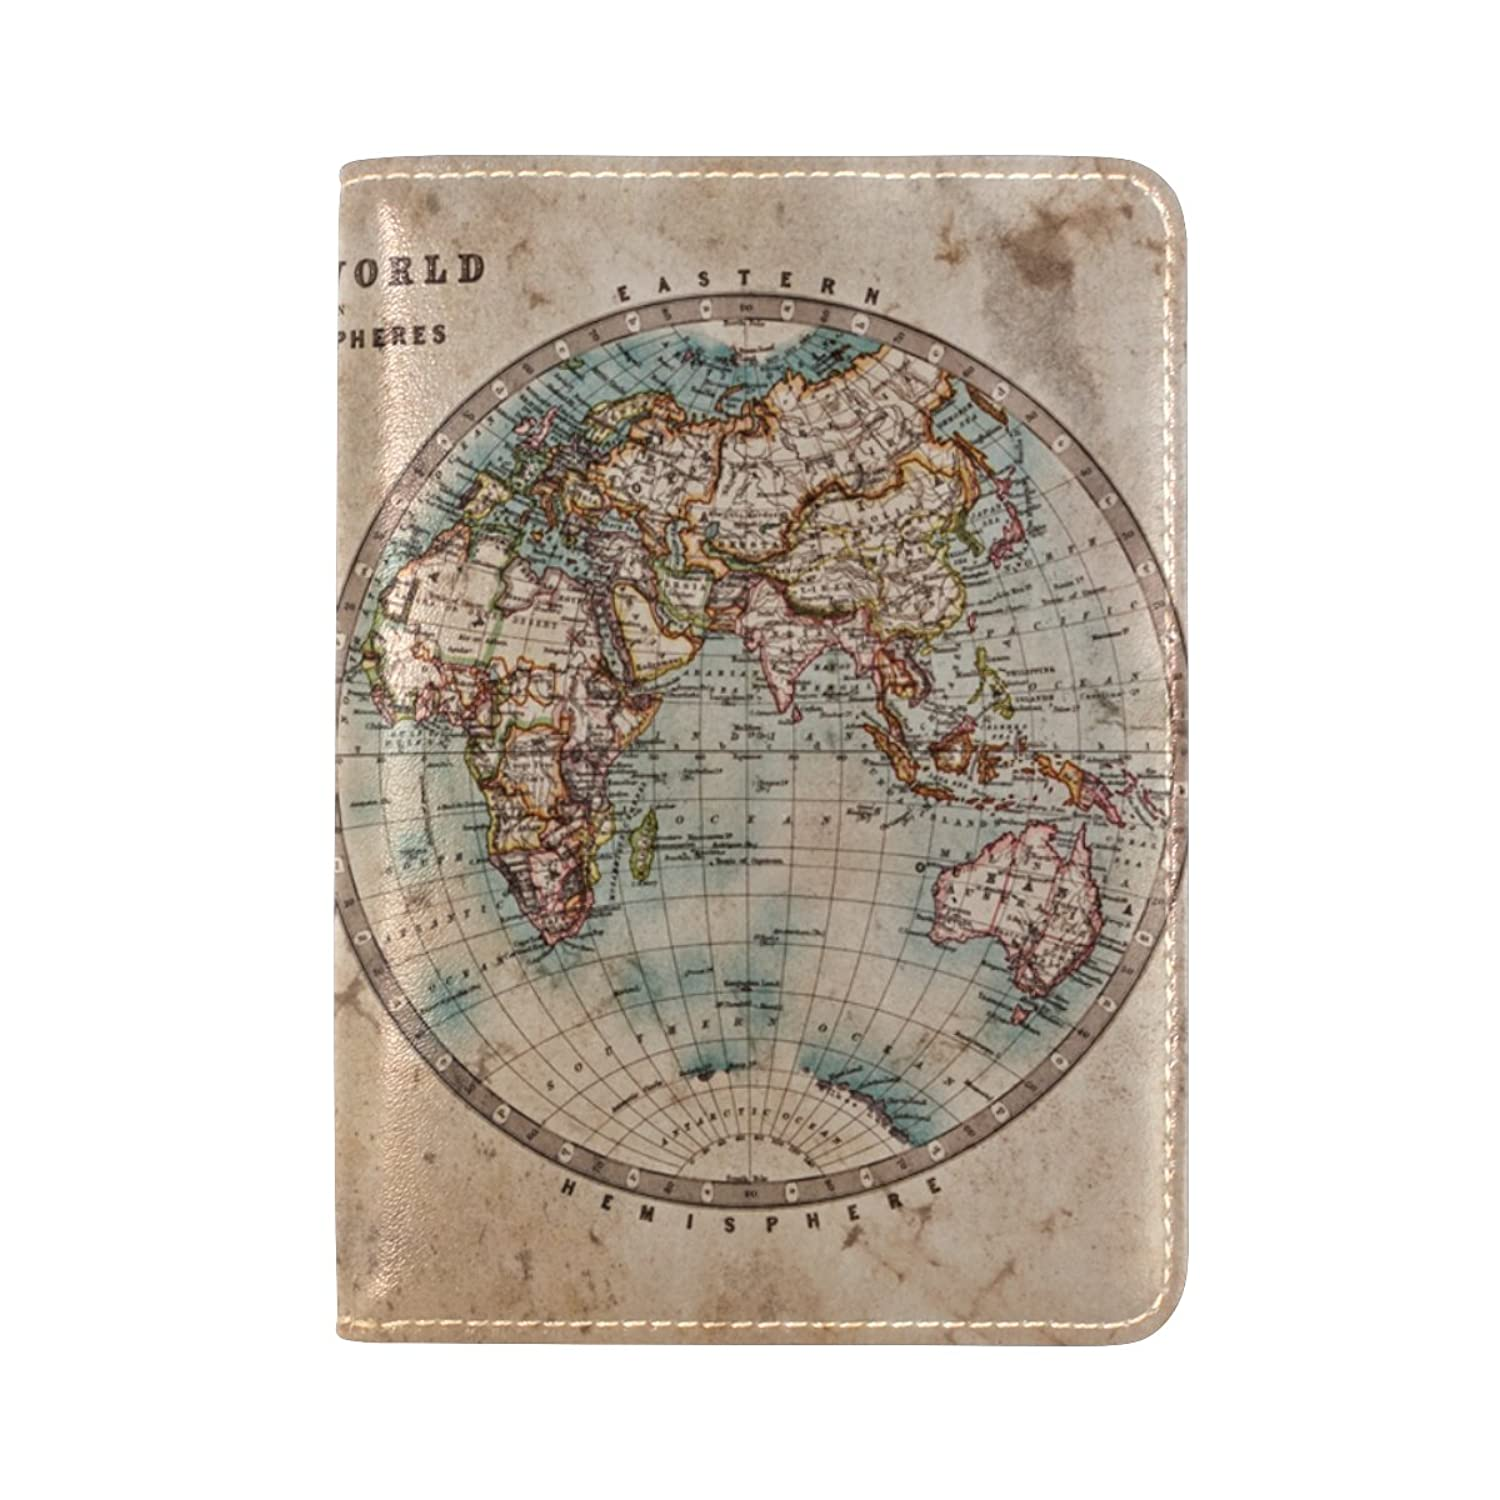 La random a genuine old stained world map passport holder cover la random a genuine old stained world map passport holder cover leather travel passport wallet case gumiabroncs Images